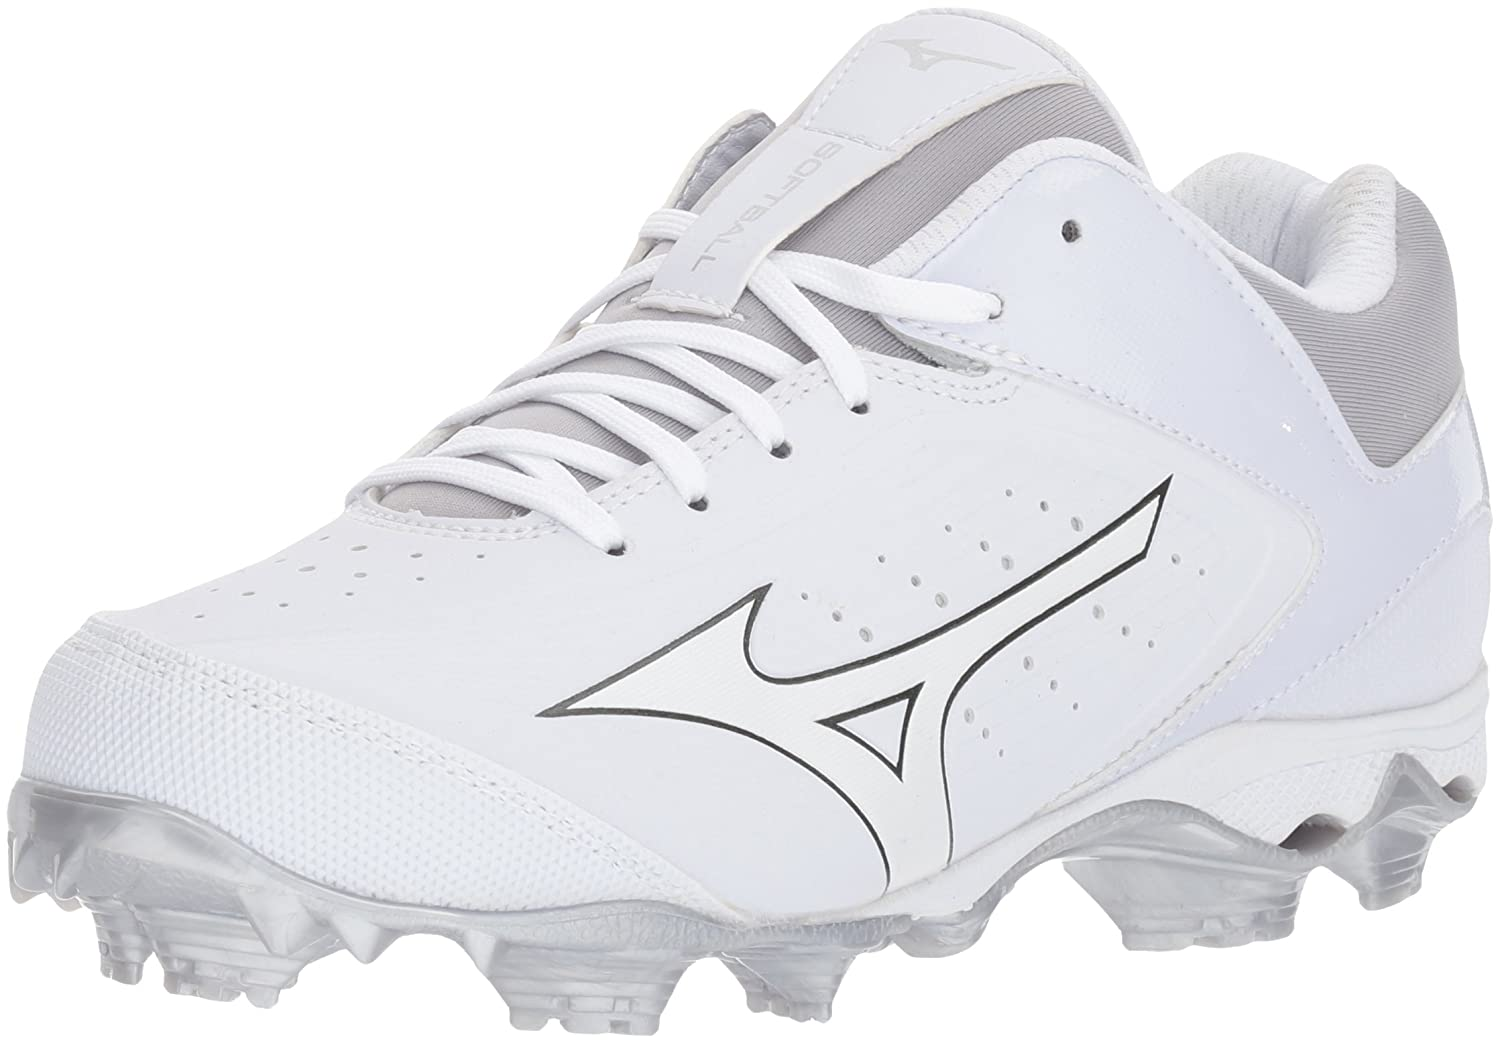 Mizuno (MIZD9)) Women's 9-Spike Advanced Finch Elite 3 Fastpitch Cleat Softball Shoe B071ZZDLJW 12 B(M) US|White/White